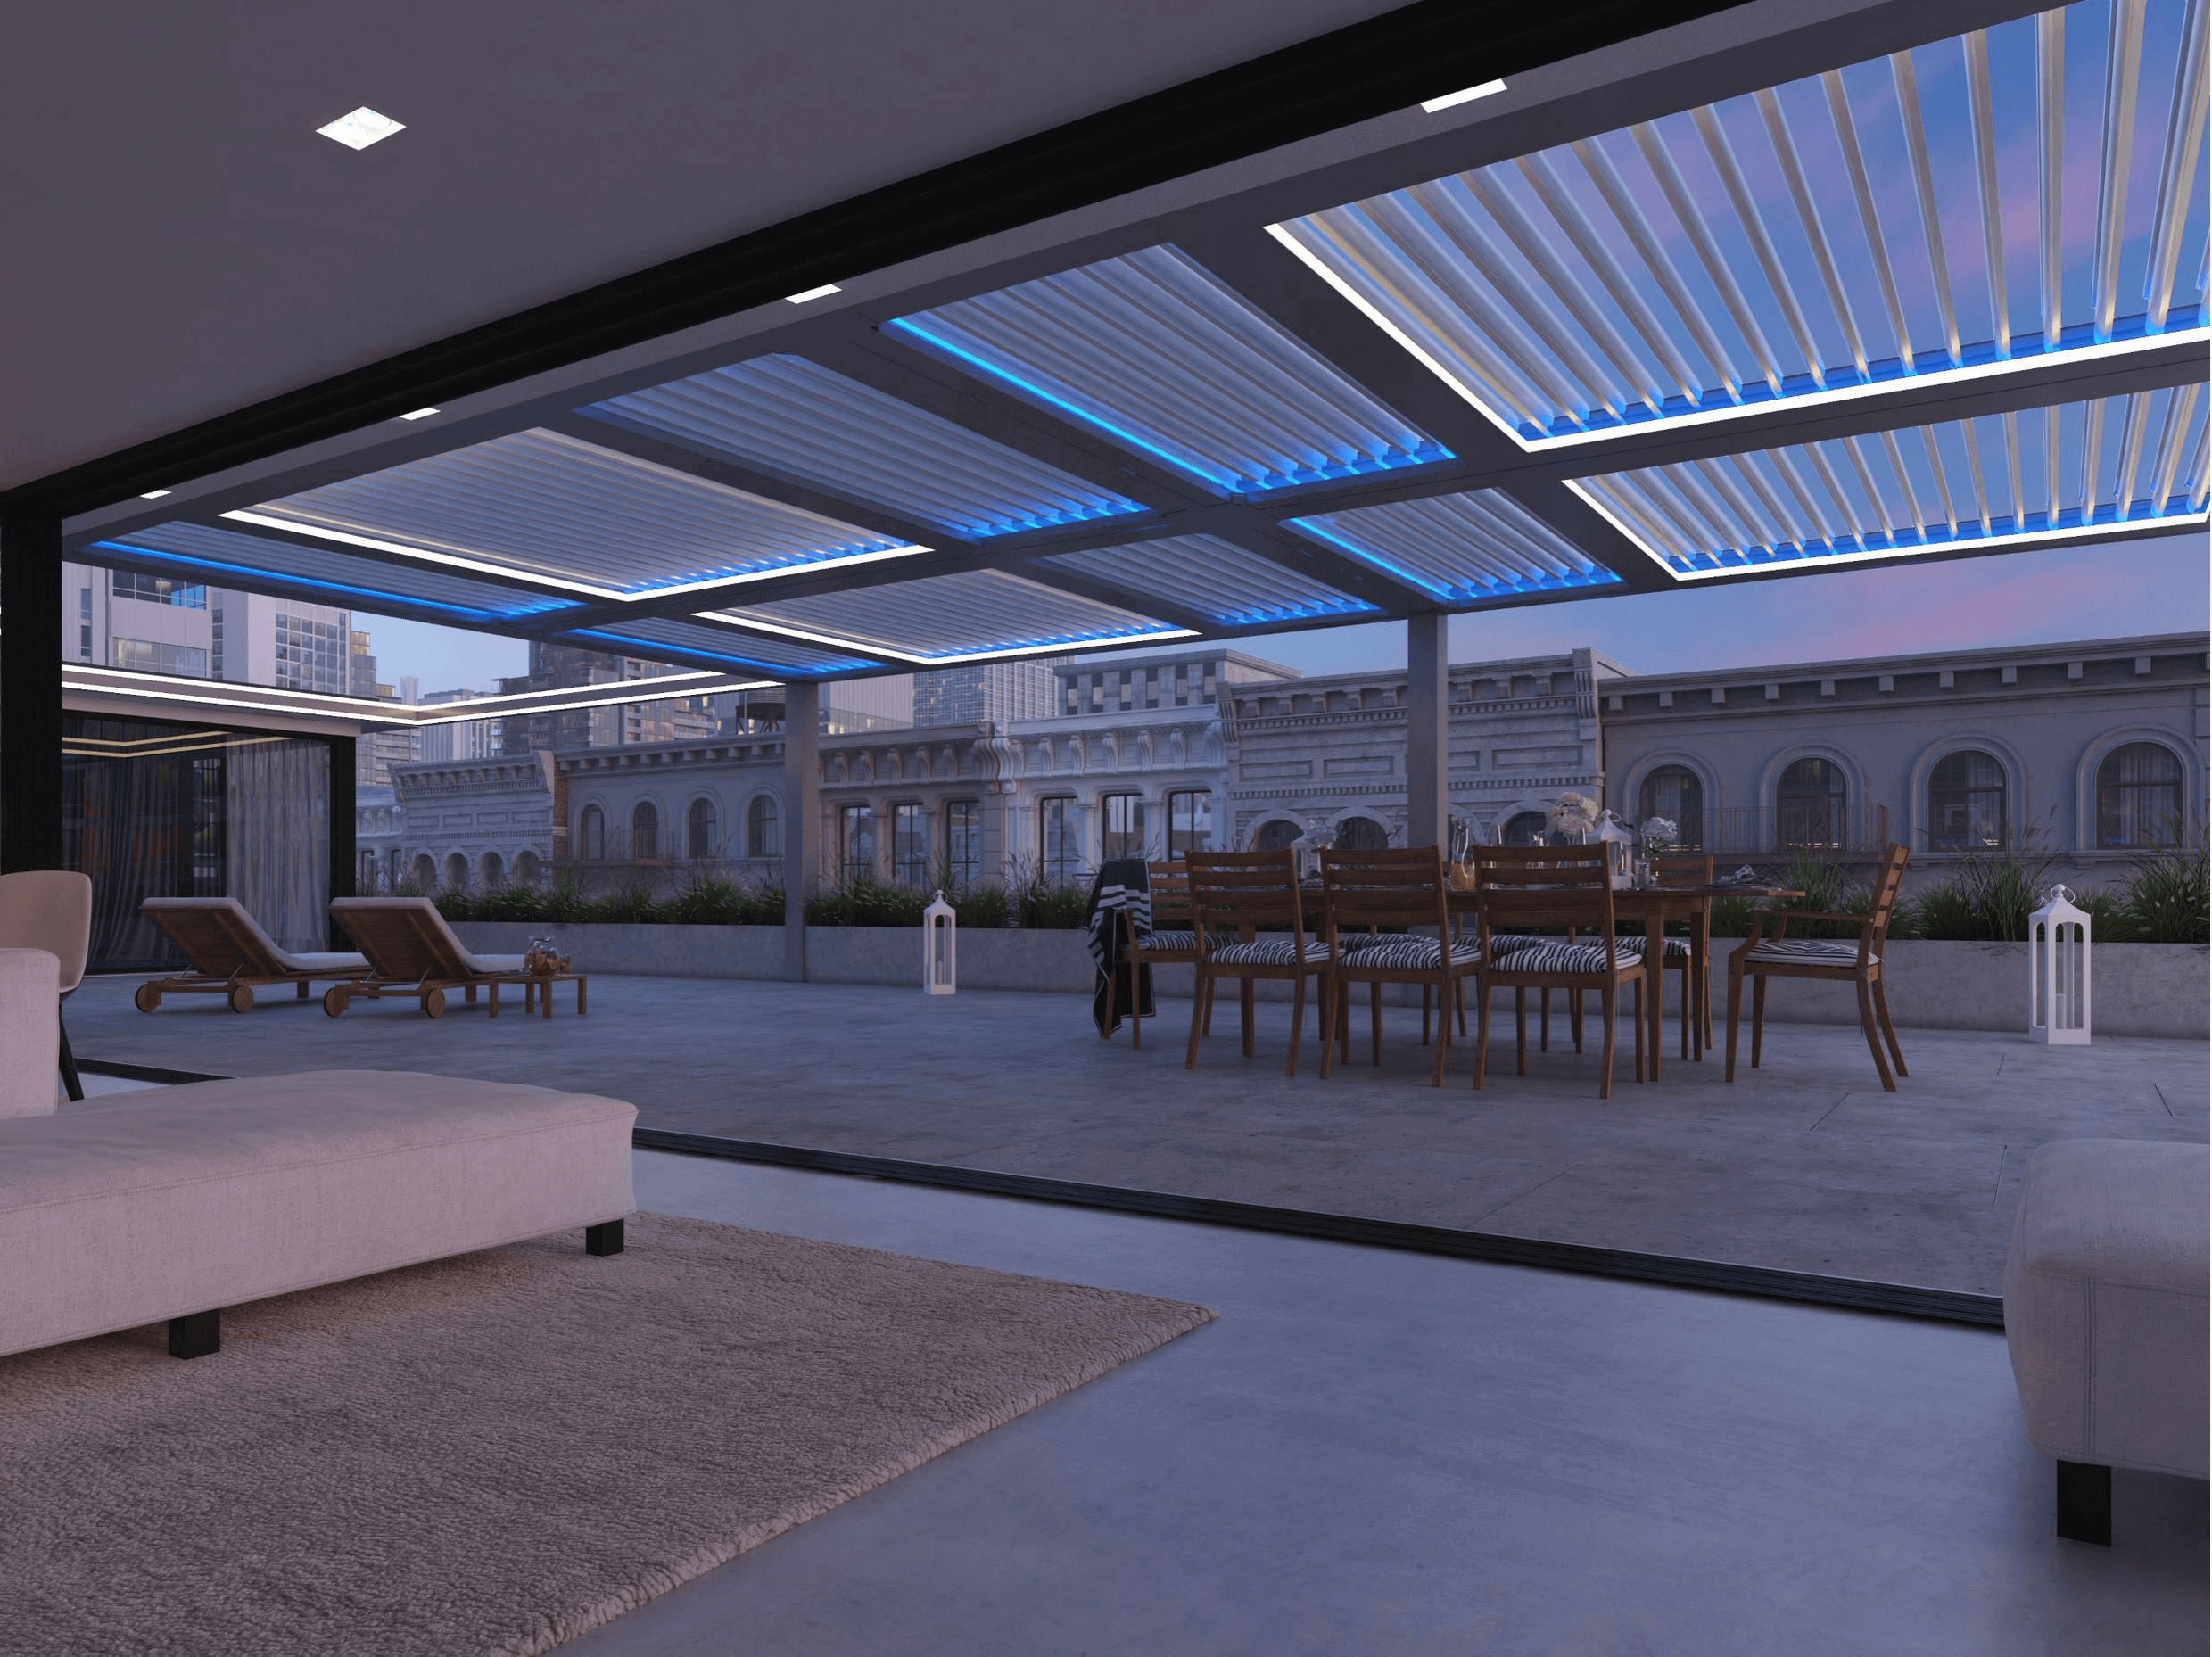 Evening under opened pergola louvers with blue and white track lighting around louvers in urban terrace landscape